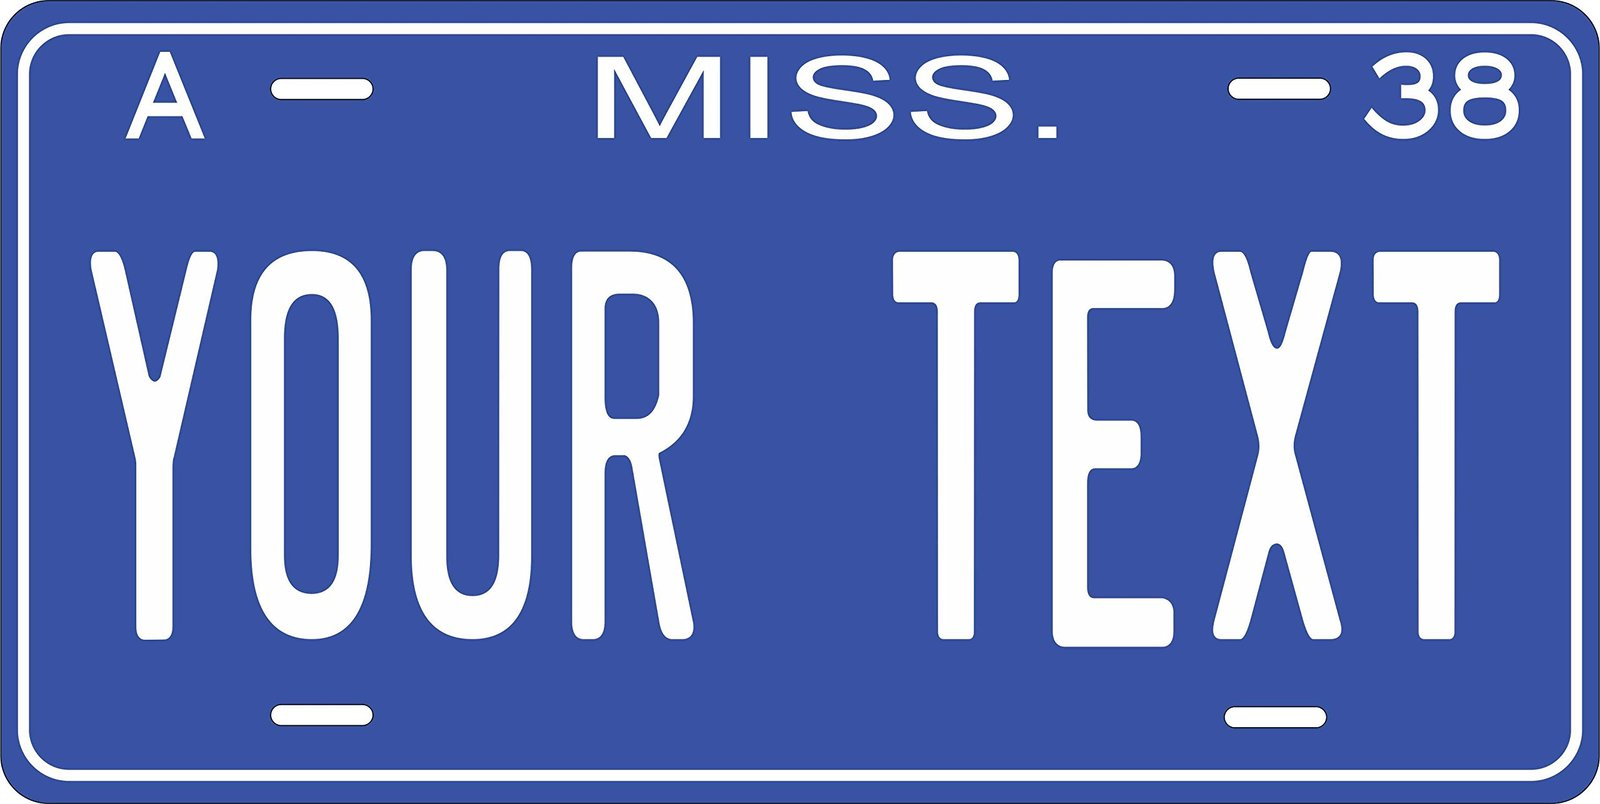 Mississippi 1938 Personalized Tag Vehicle Car Auto License Plate